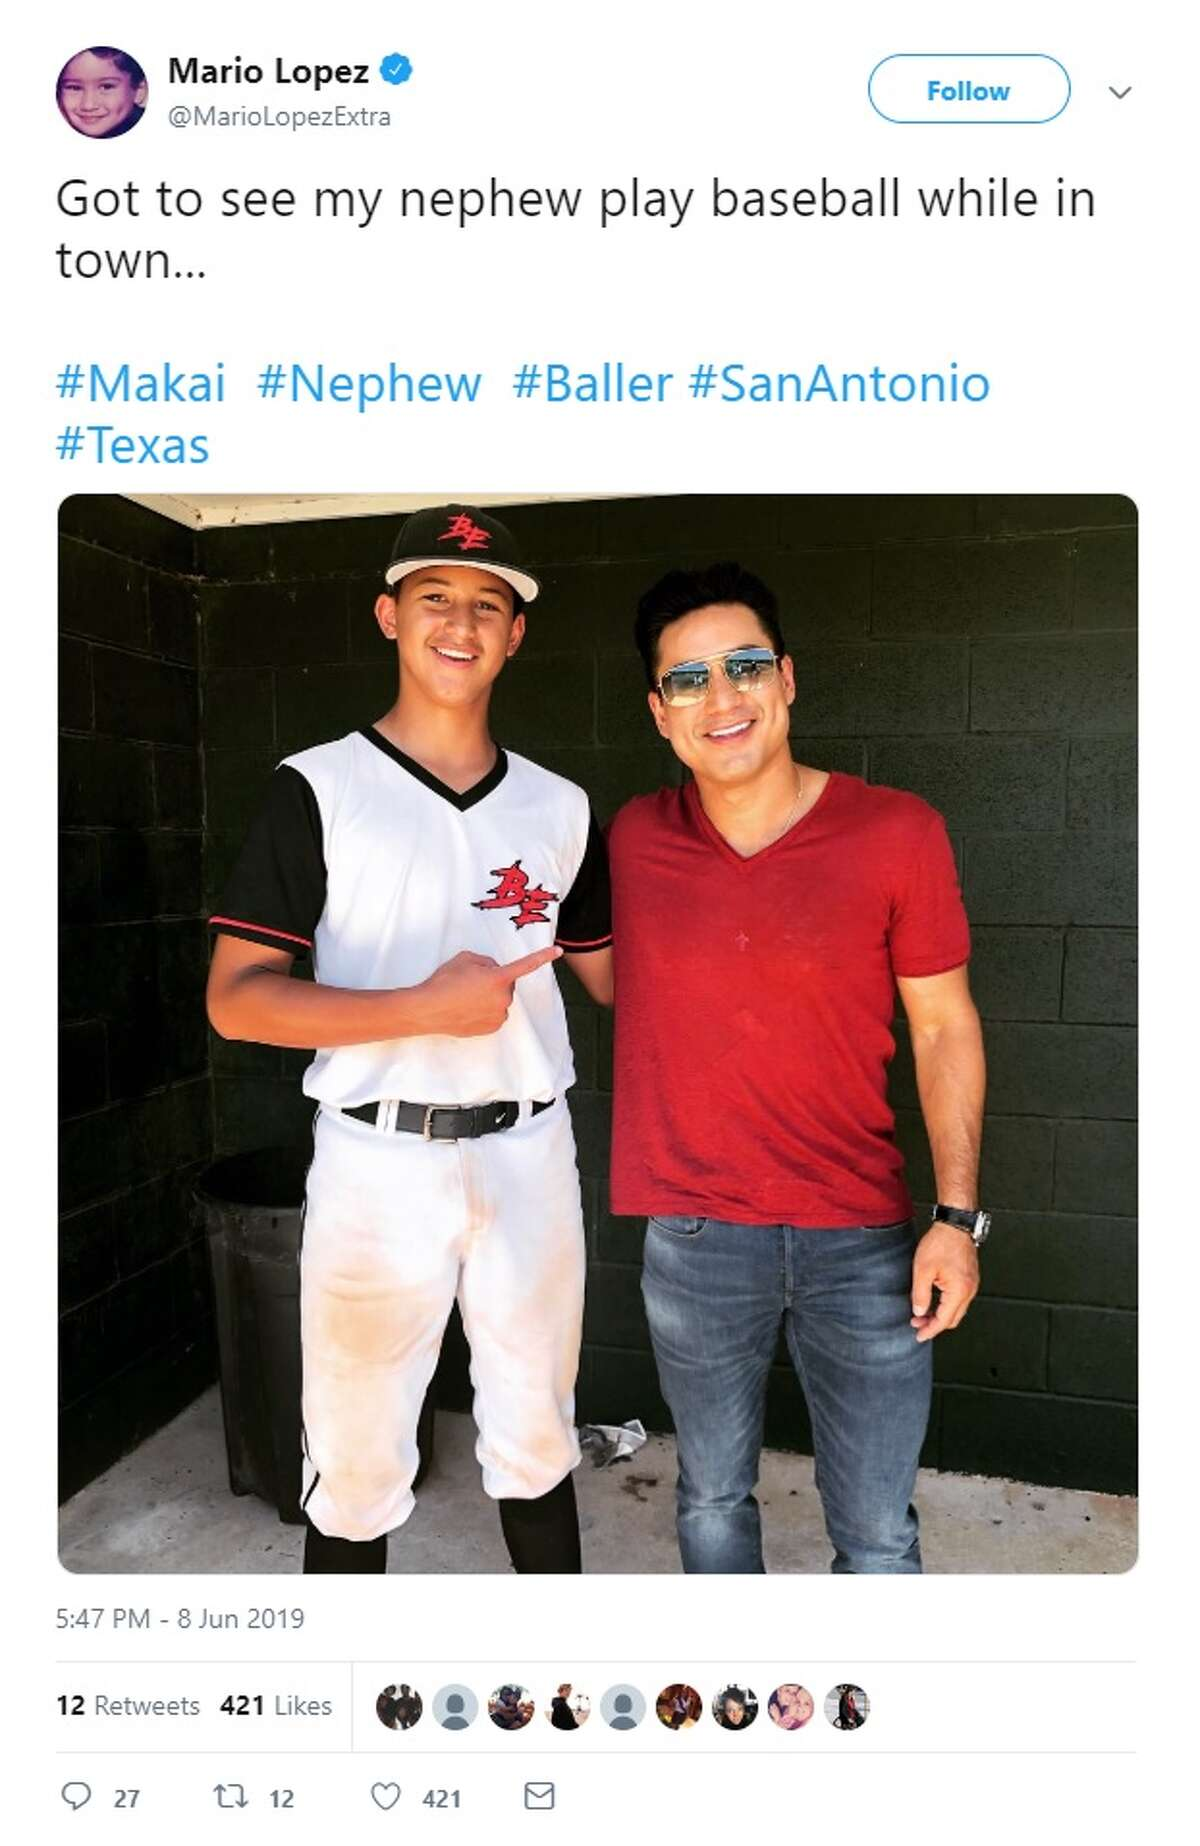 While in San Antonio, Mario Lopez tweeted about seeing his nephew play baseball.